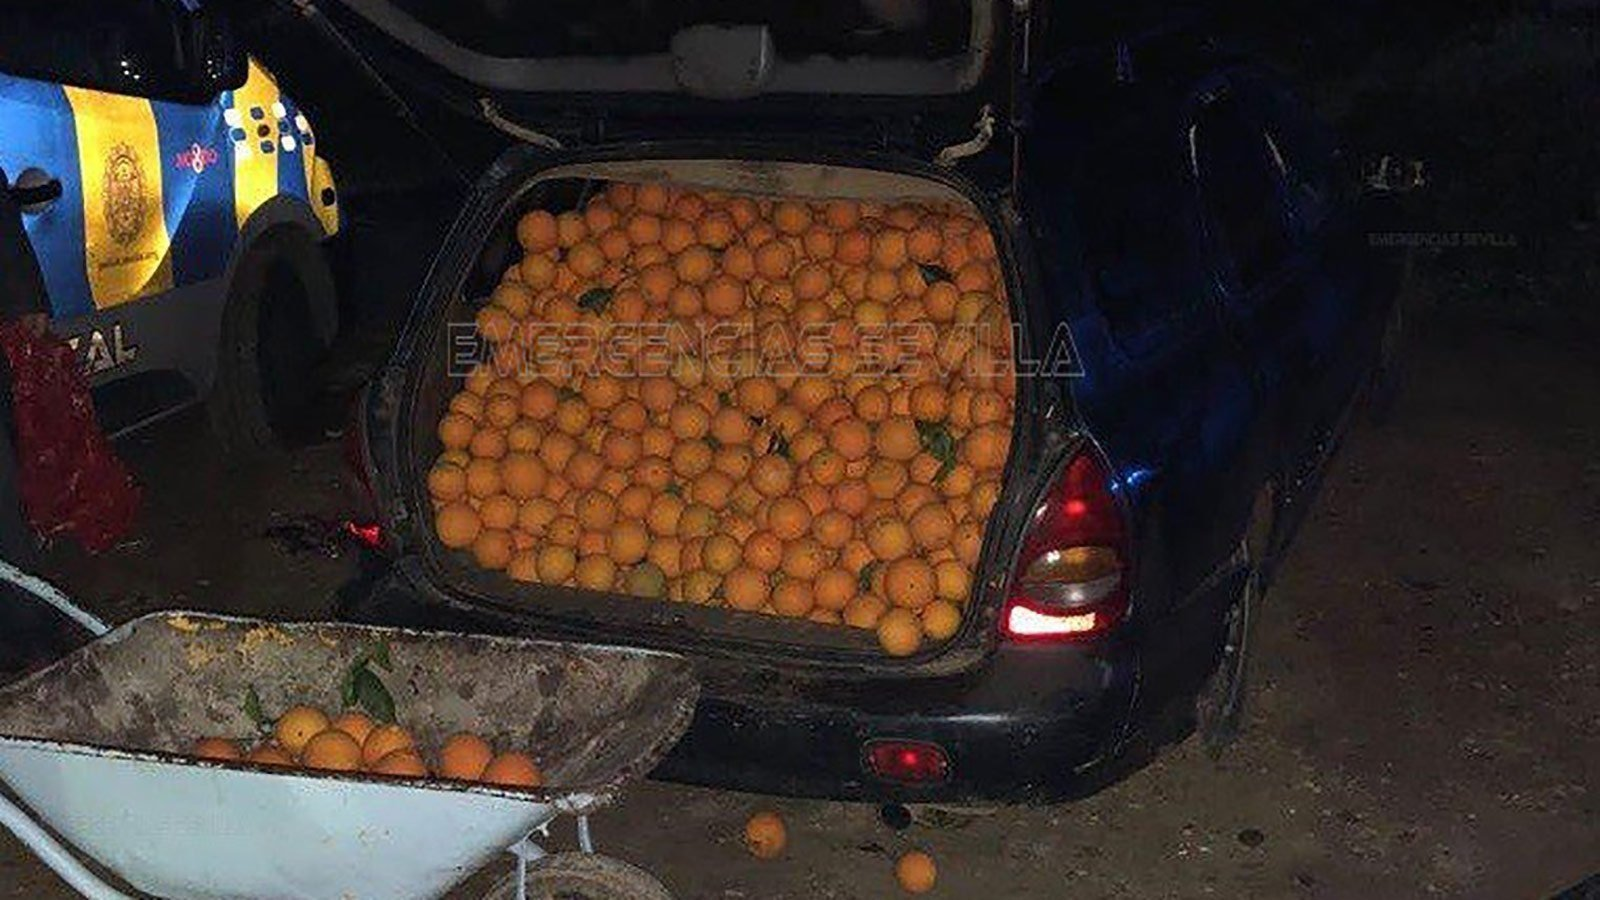 Pulp Fiction: Family Of Five Arrested With 4 Tons Oranges In Vehicle